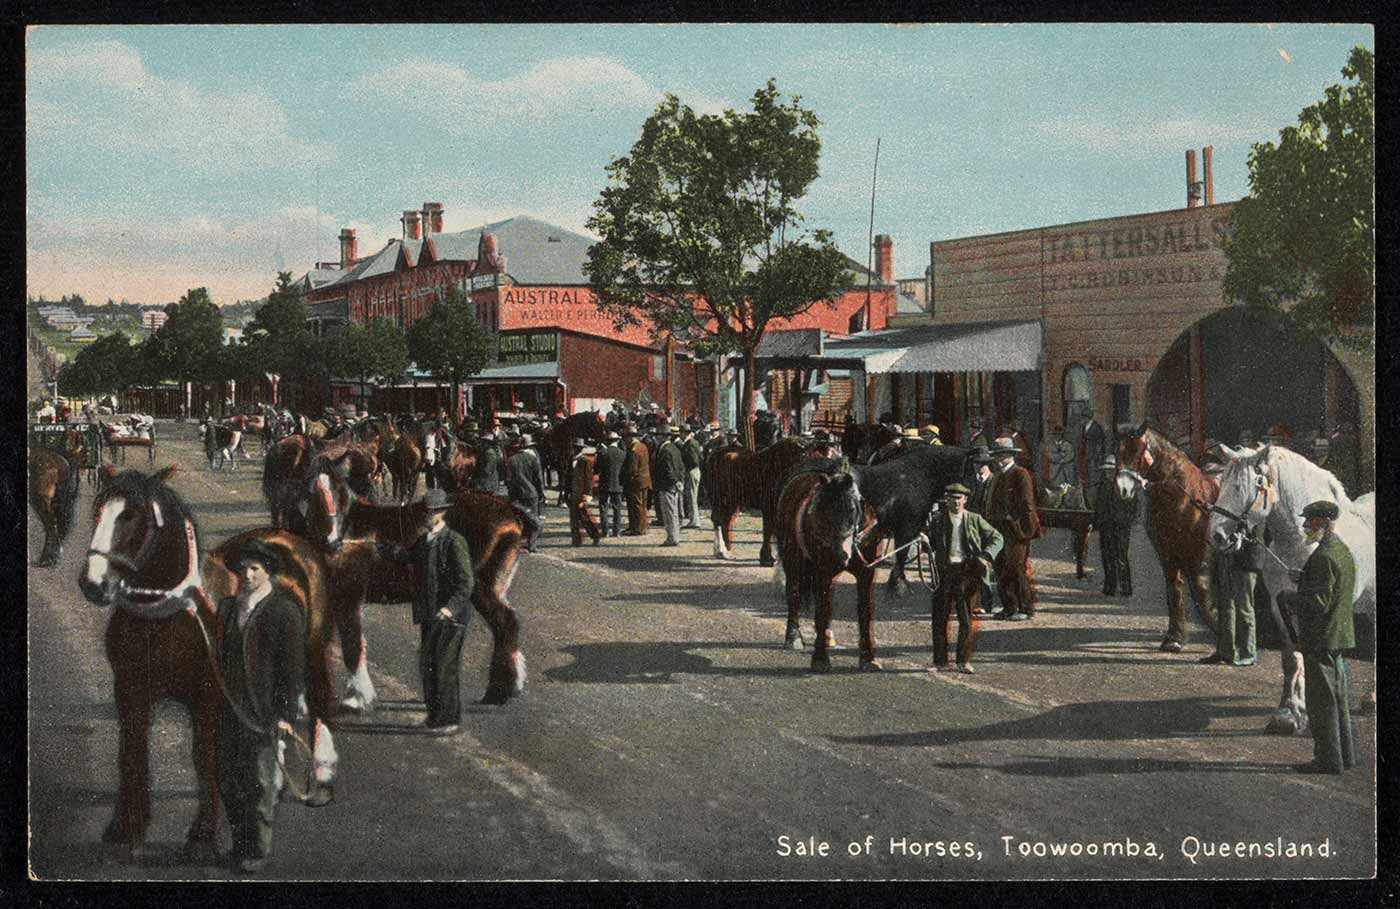 Colour photograph of a group of men holding horses, in a paved street of a town. At the centre of the postcard, another group of men stands in a semi-circle, with their backs to the camera, facing a horse that is being paraded before them. - click to view larger image